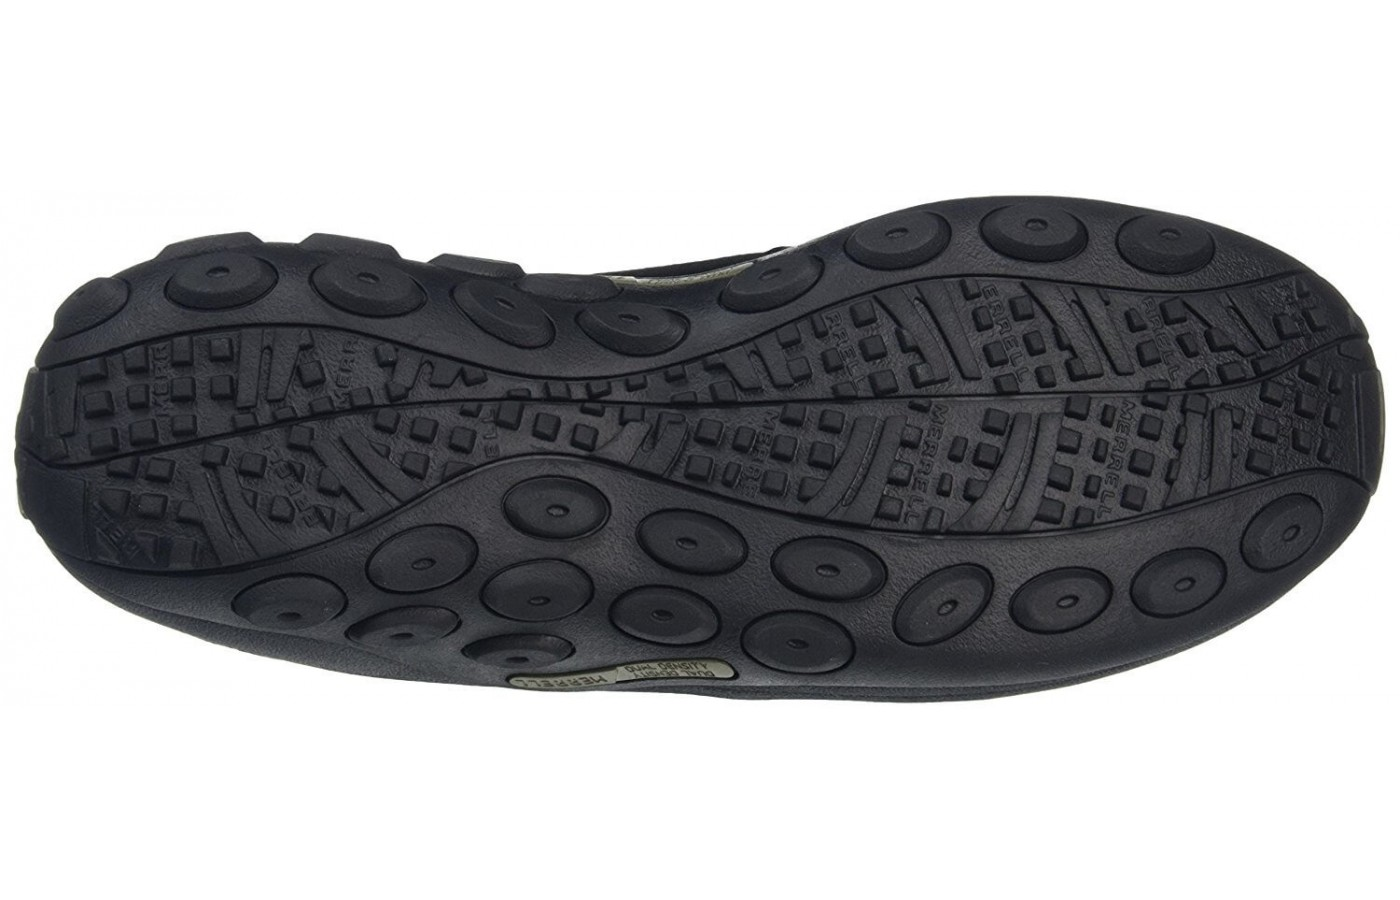 The Merrell Jungle Moc's outsole is made of M Select Grip material